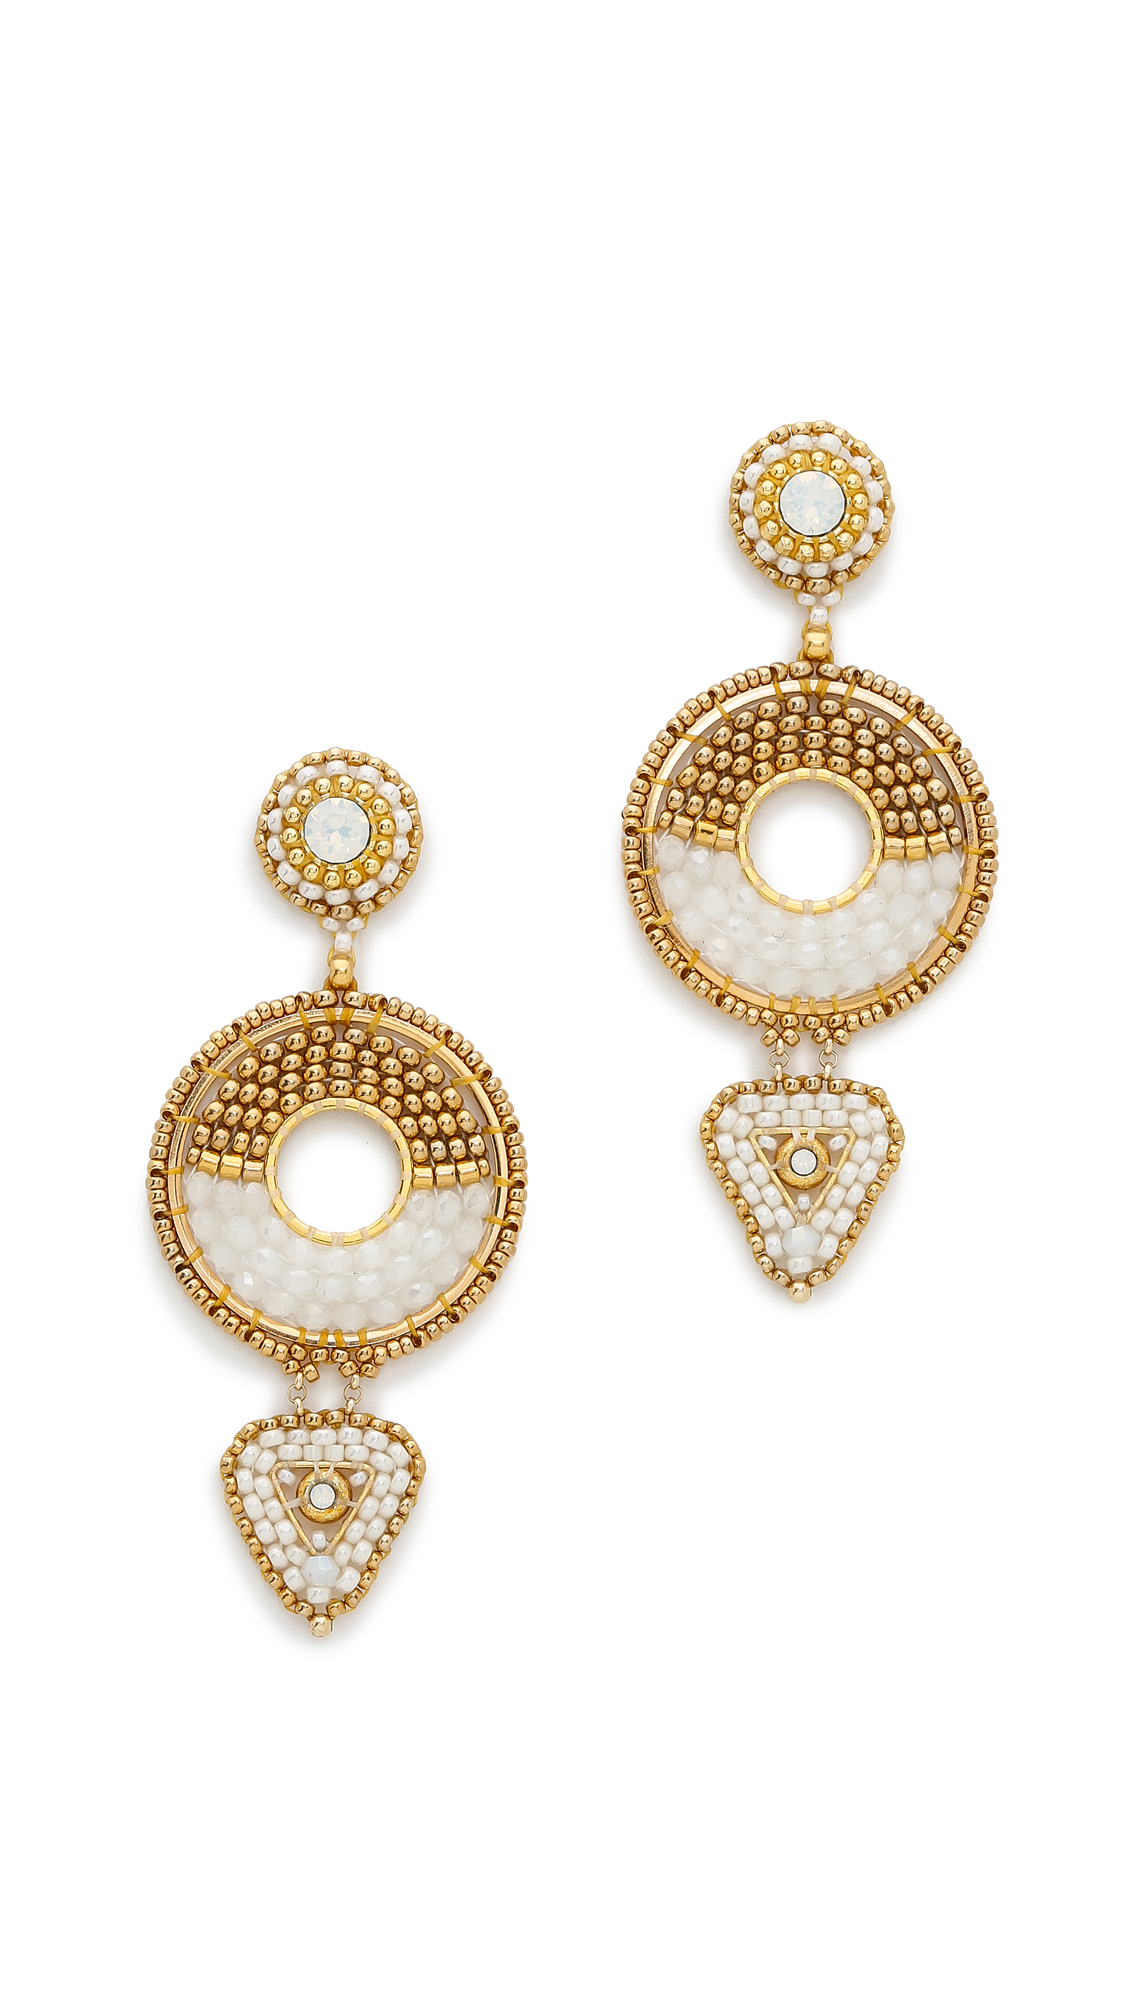 Lyst - Miguel ases Meredith Earrings - Gold/White in Metallic